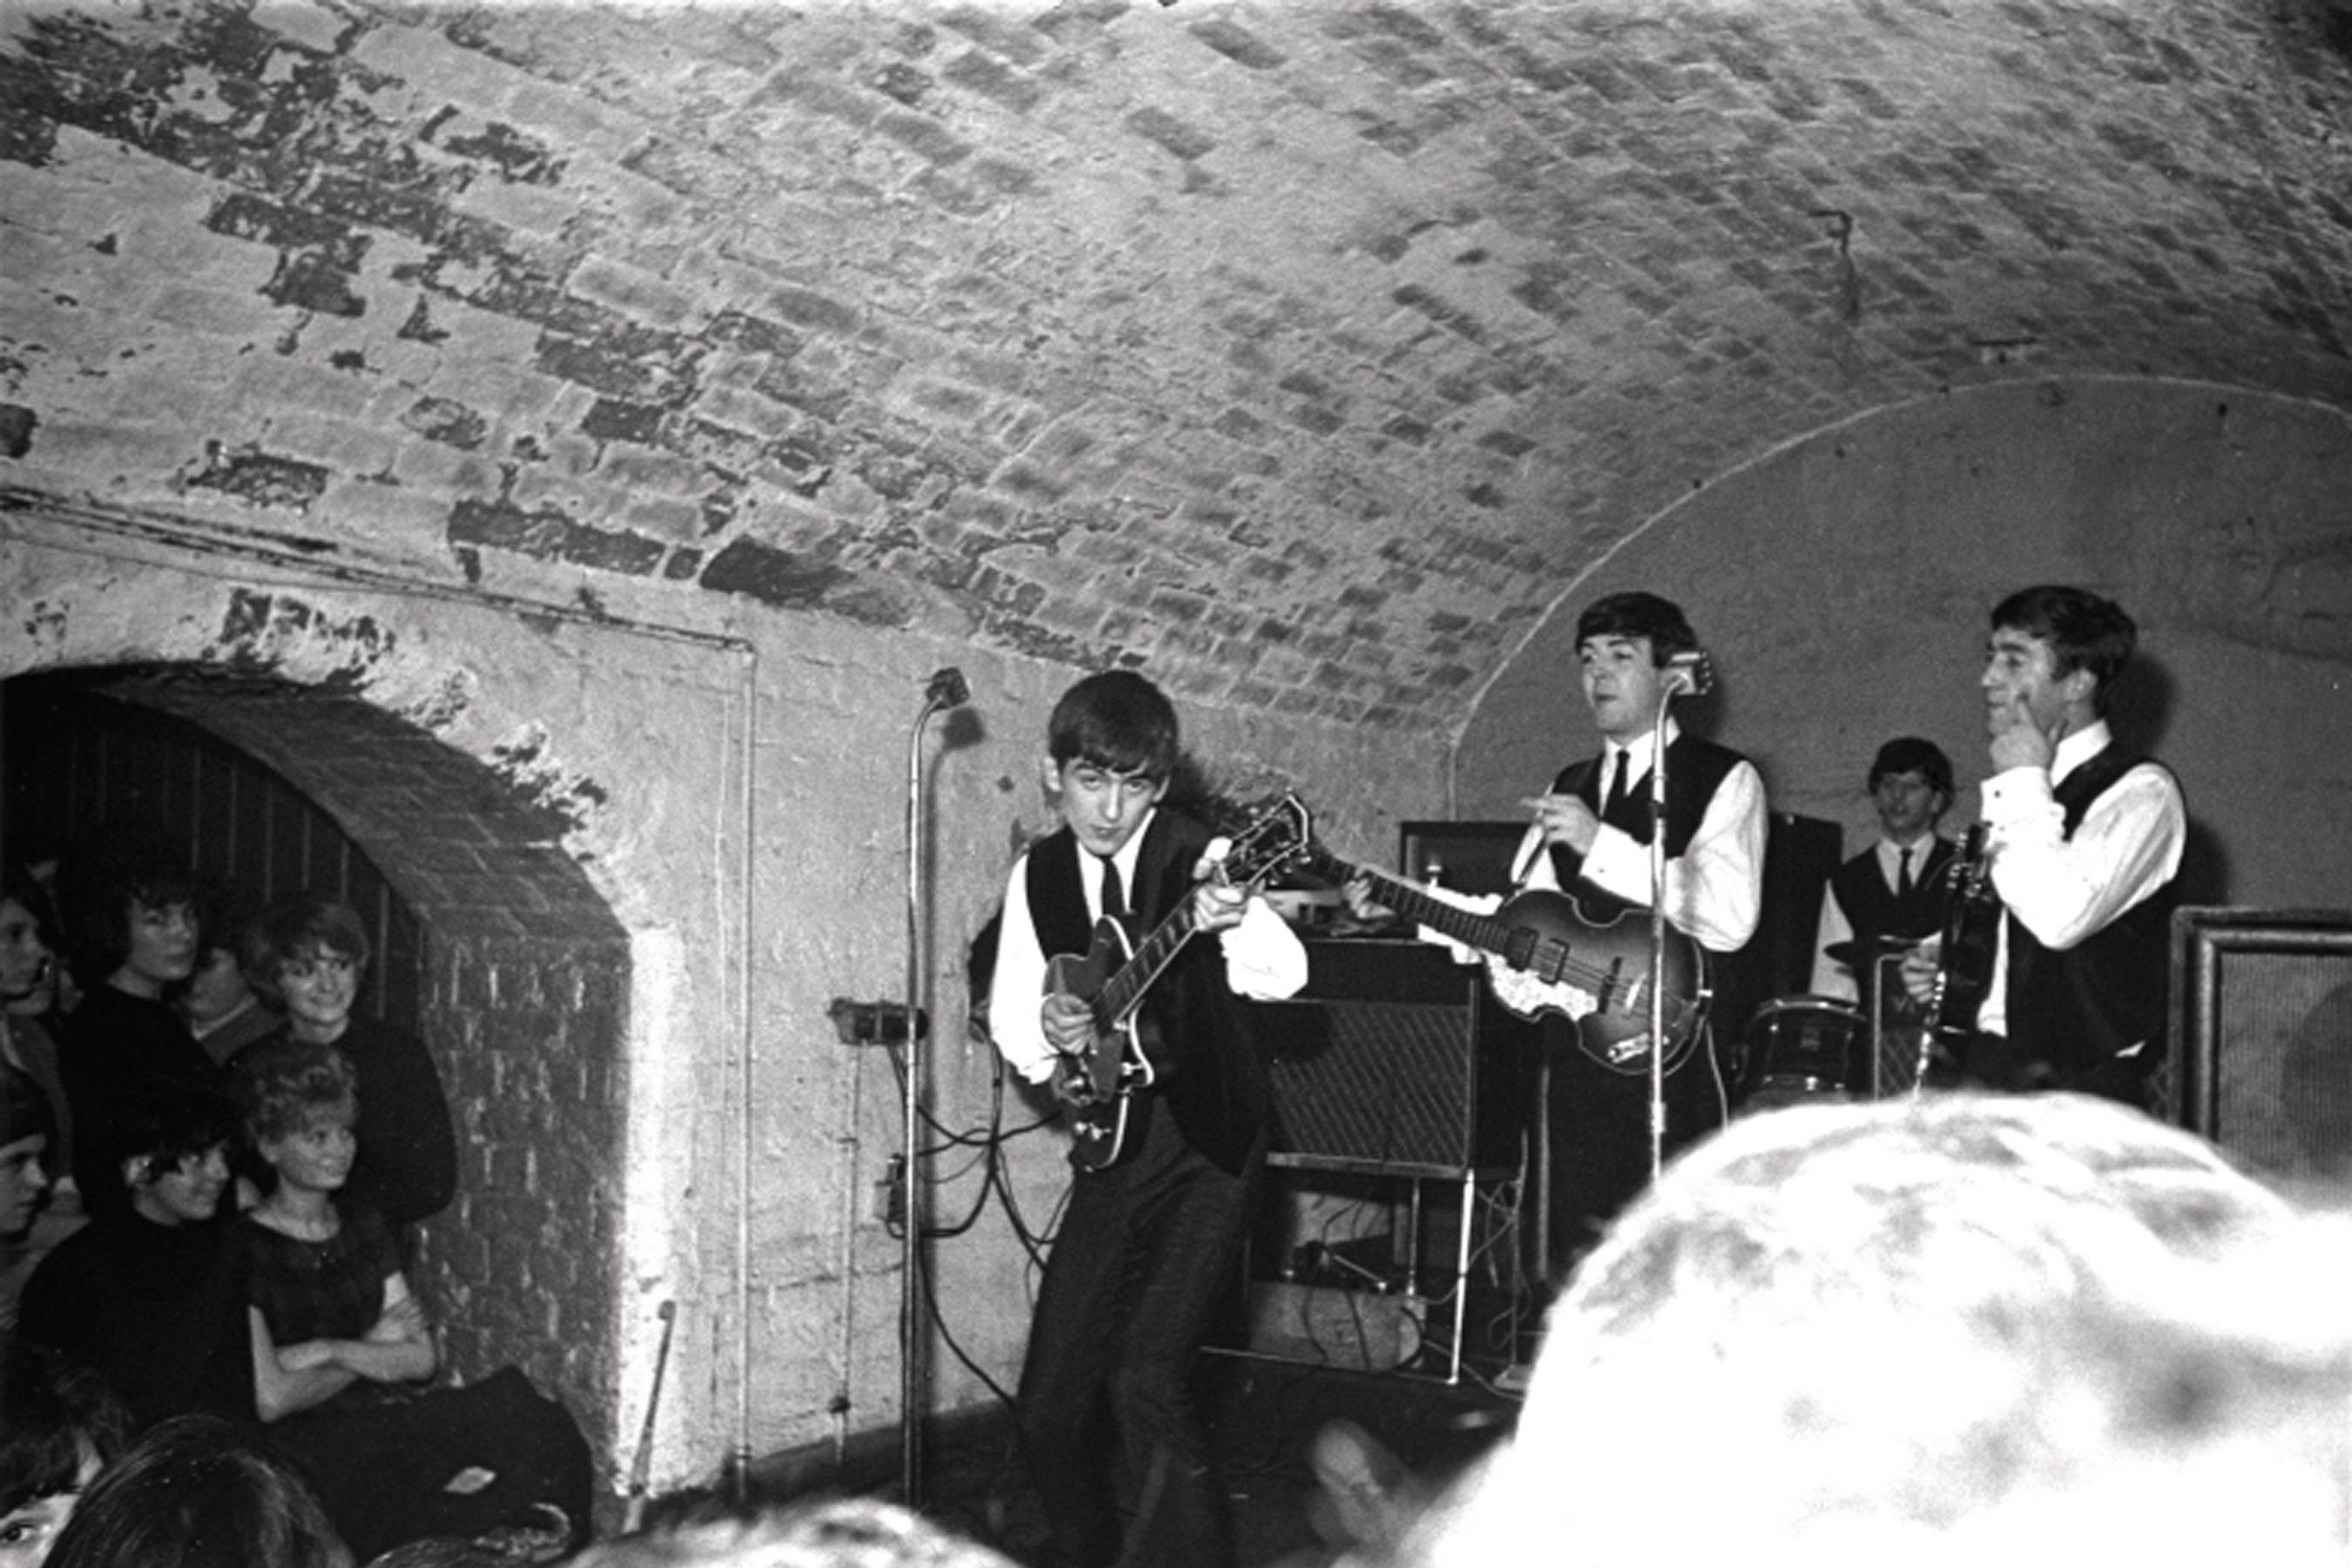 Beatles-cavern-club-photo-9.00x6.00.jpg